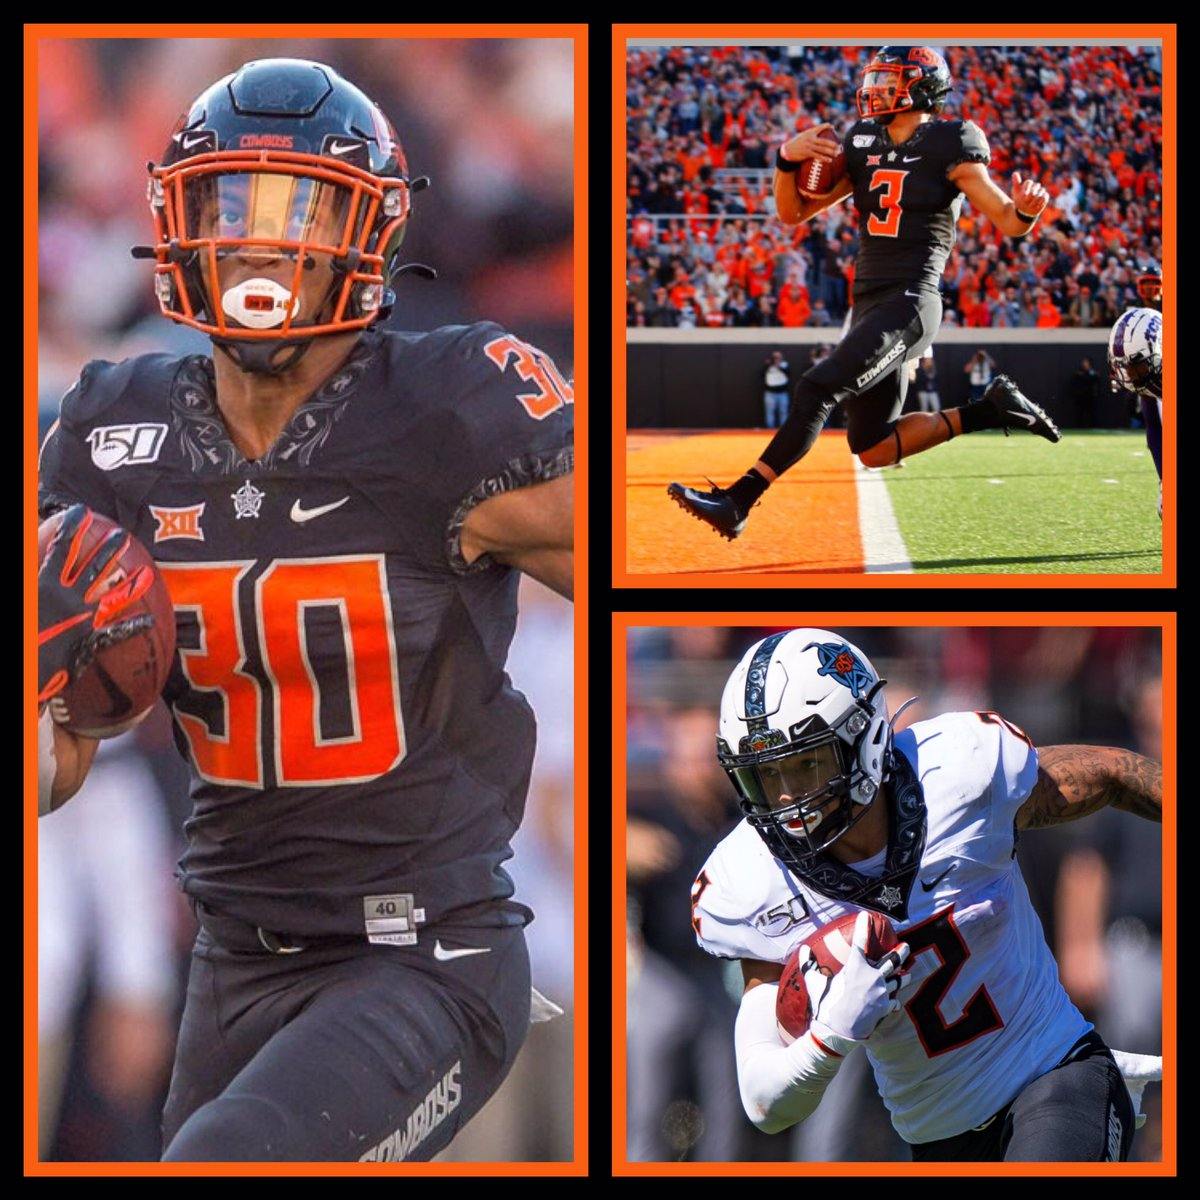 Coming soon  #GoPokes <br>http://pic.twitter.com/kEHzolFB3F